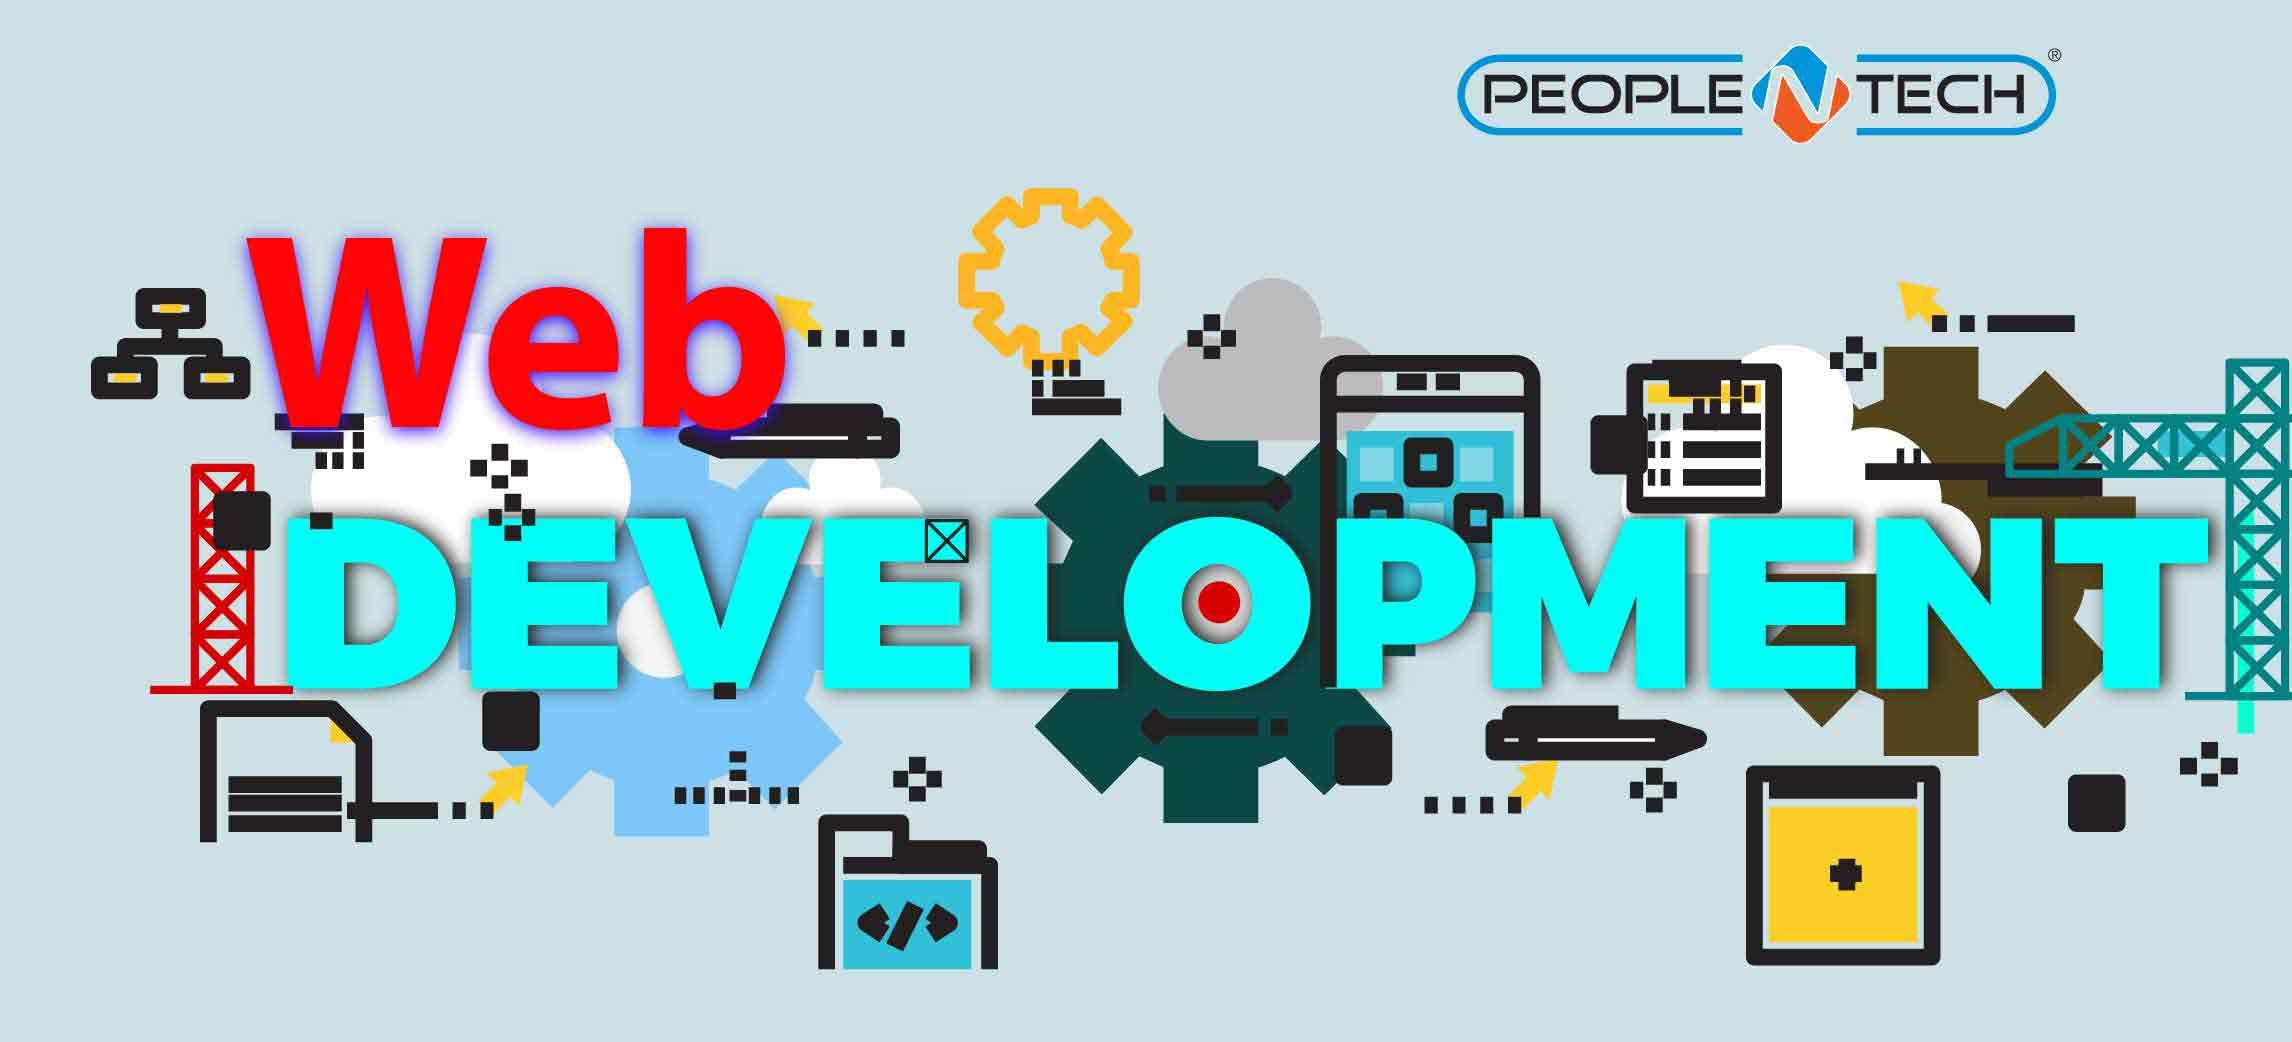 Best It Training Institute For Web Design And Development Training In Dhaka Bangladesh This C Web Development Training Web Development Web Development Course